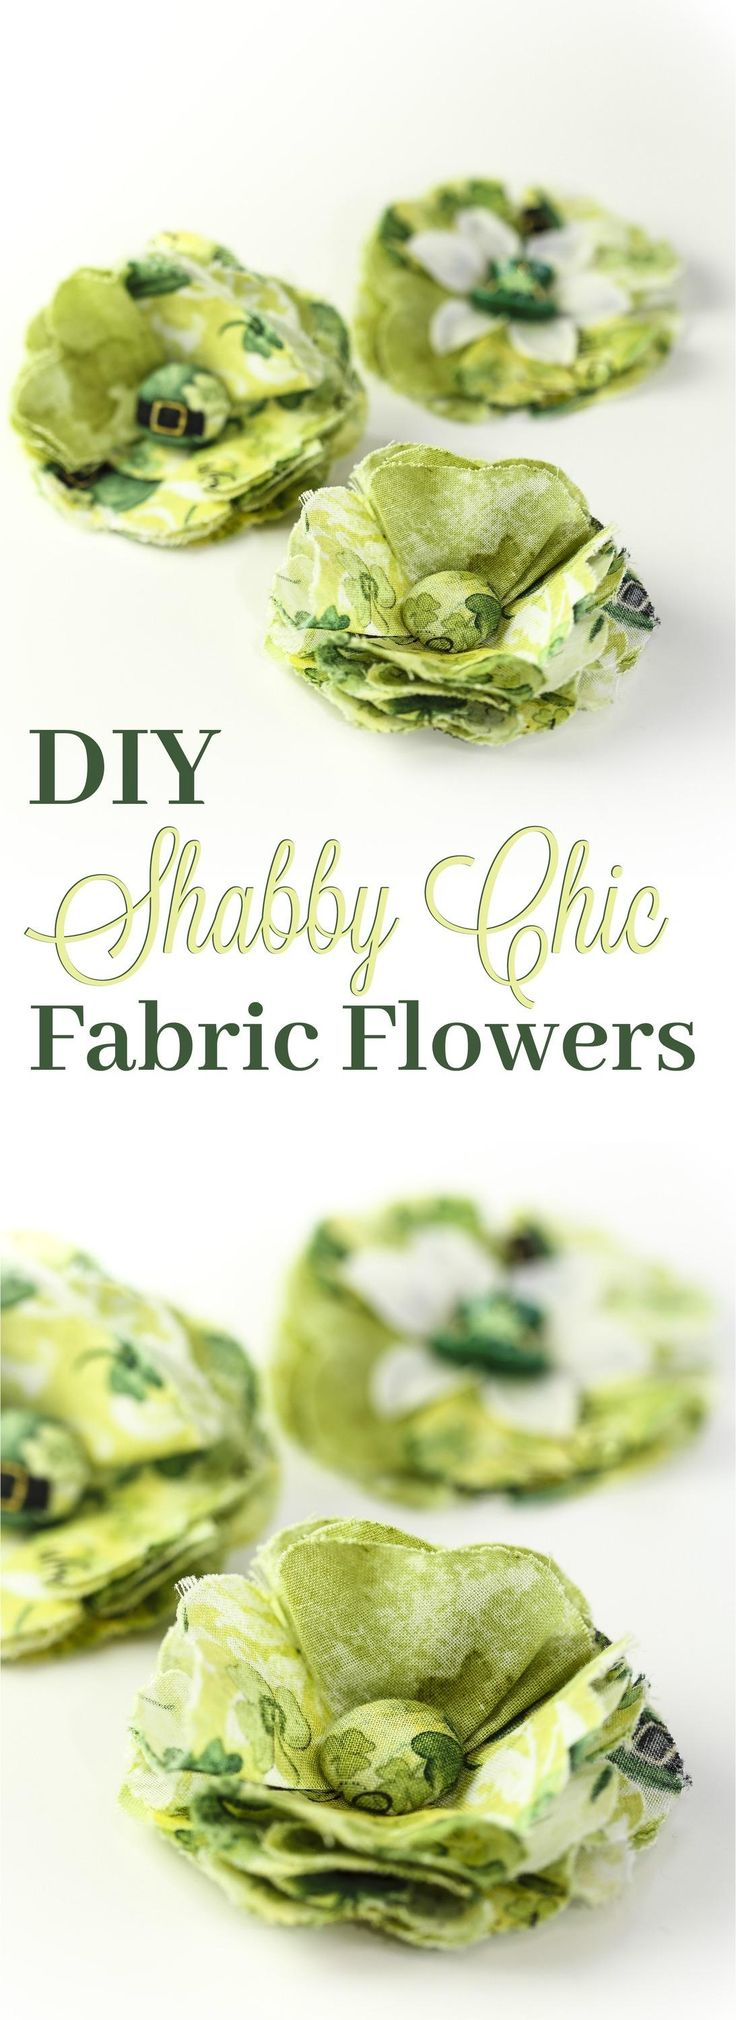 Stunning Shabby Chic Fabric Posy without the Boutique Price! These DIY Fabric Flowers can be used as hair accessories, jewelry, or even a bag accessory! Perfect for St. Patricks day, or simply change the fabric and you can match any holiday season or spec